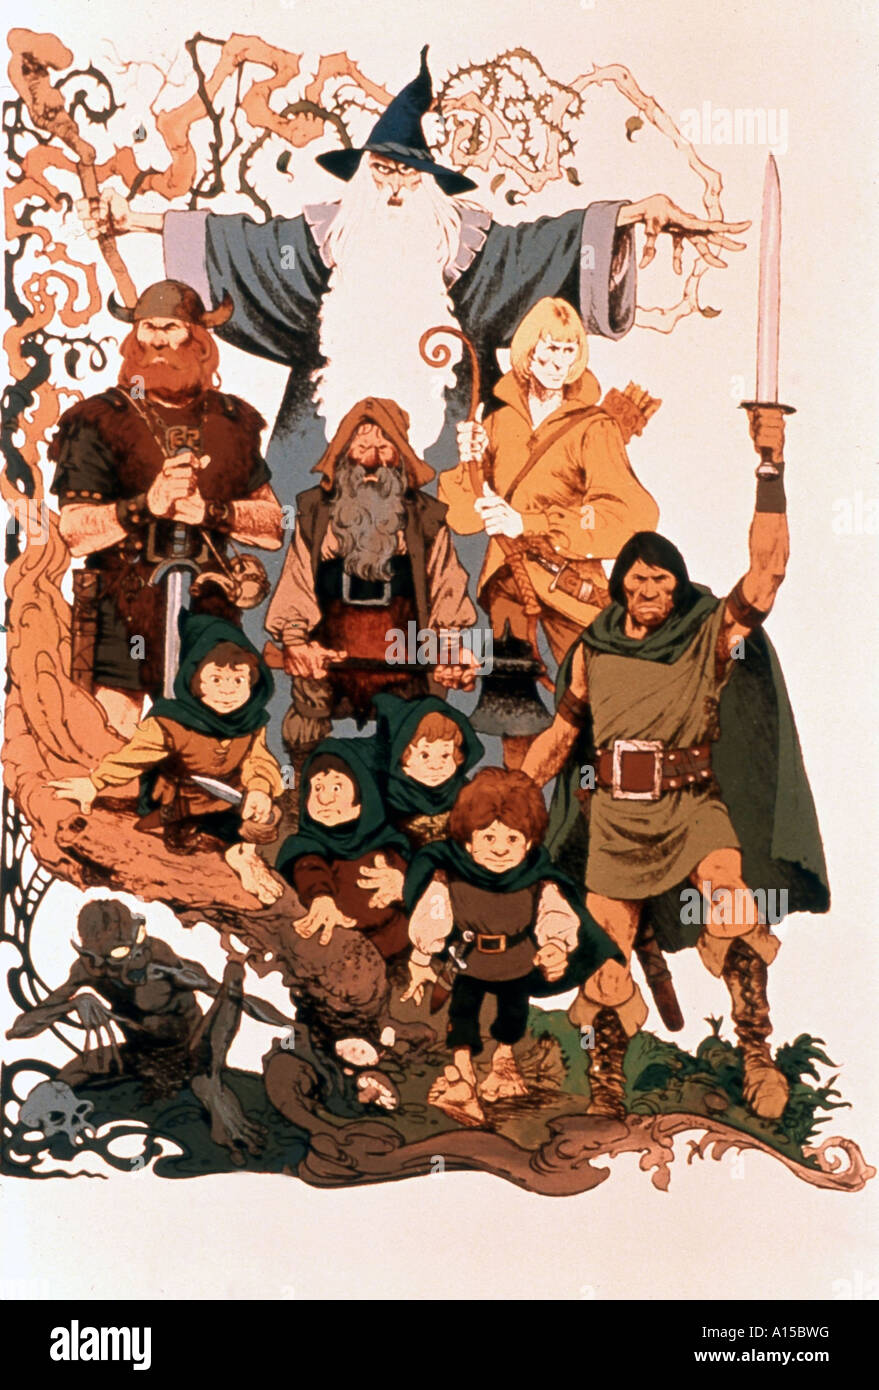 Lord Of The Rings Cartoon Film